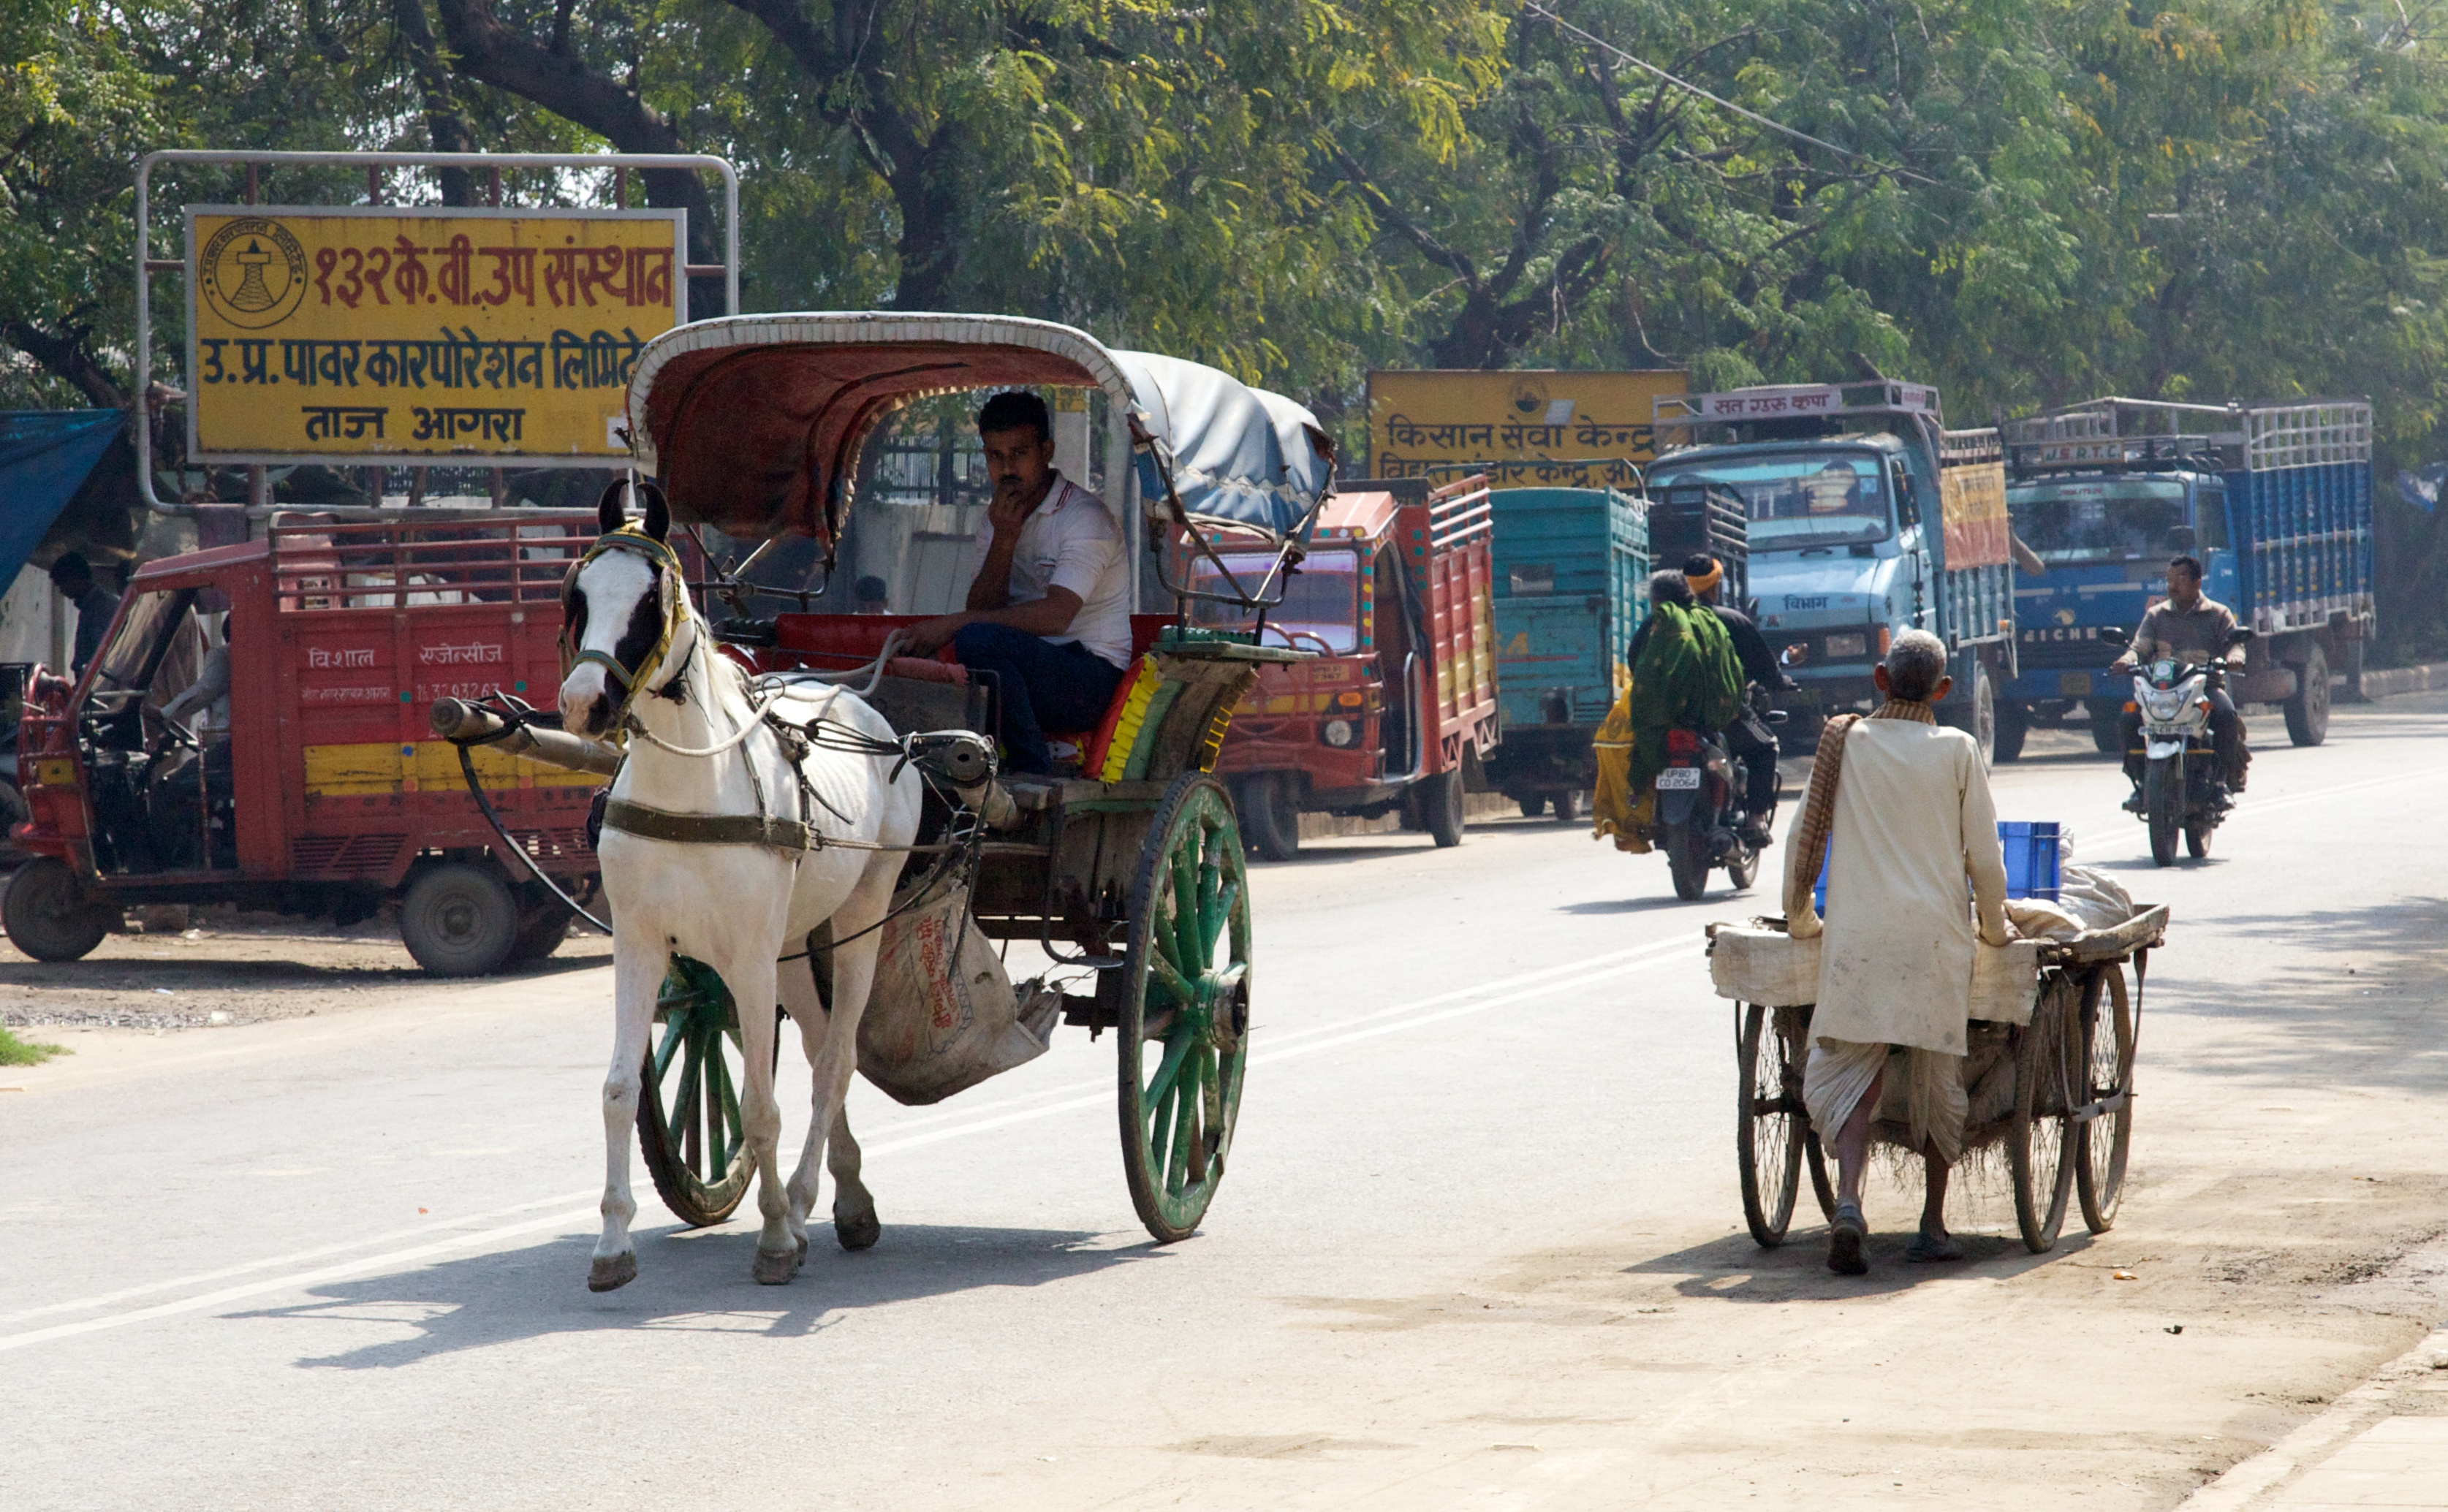 Some Modes Of Road Transport , On A Road In India